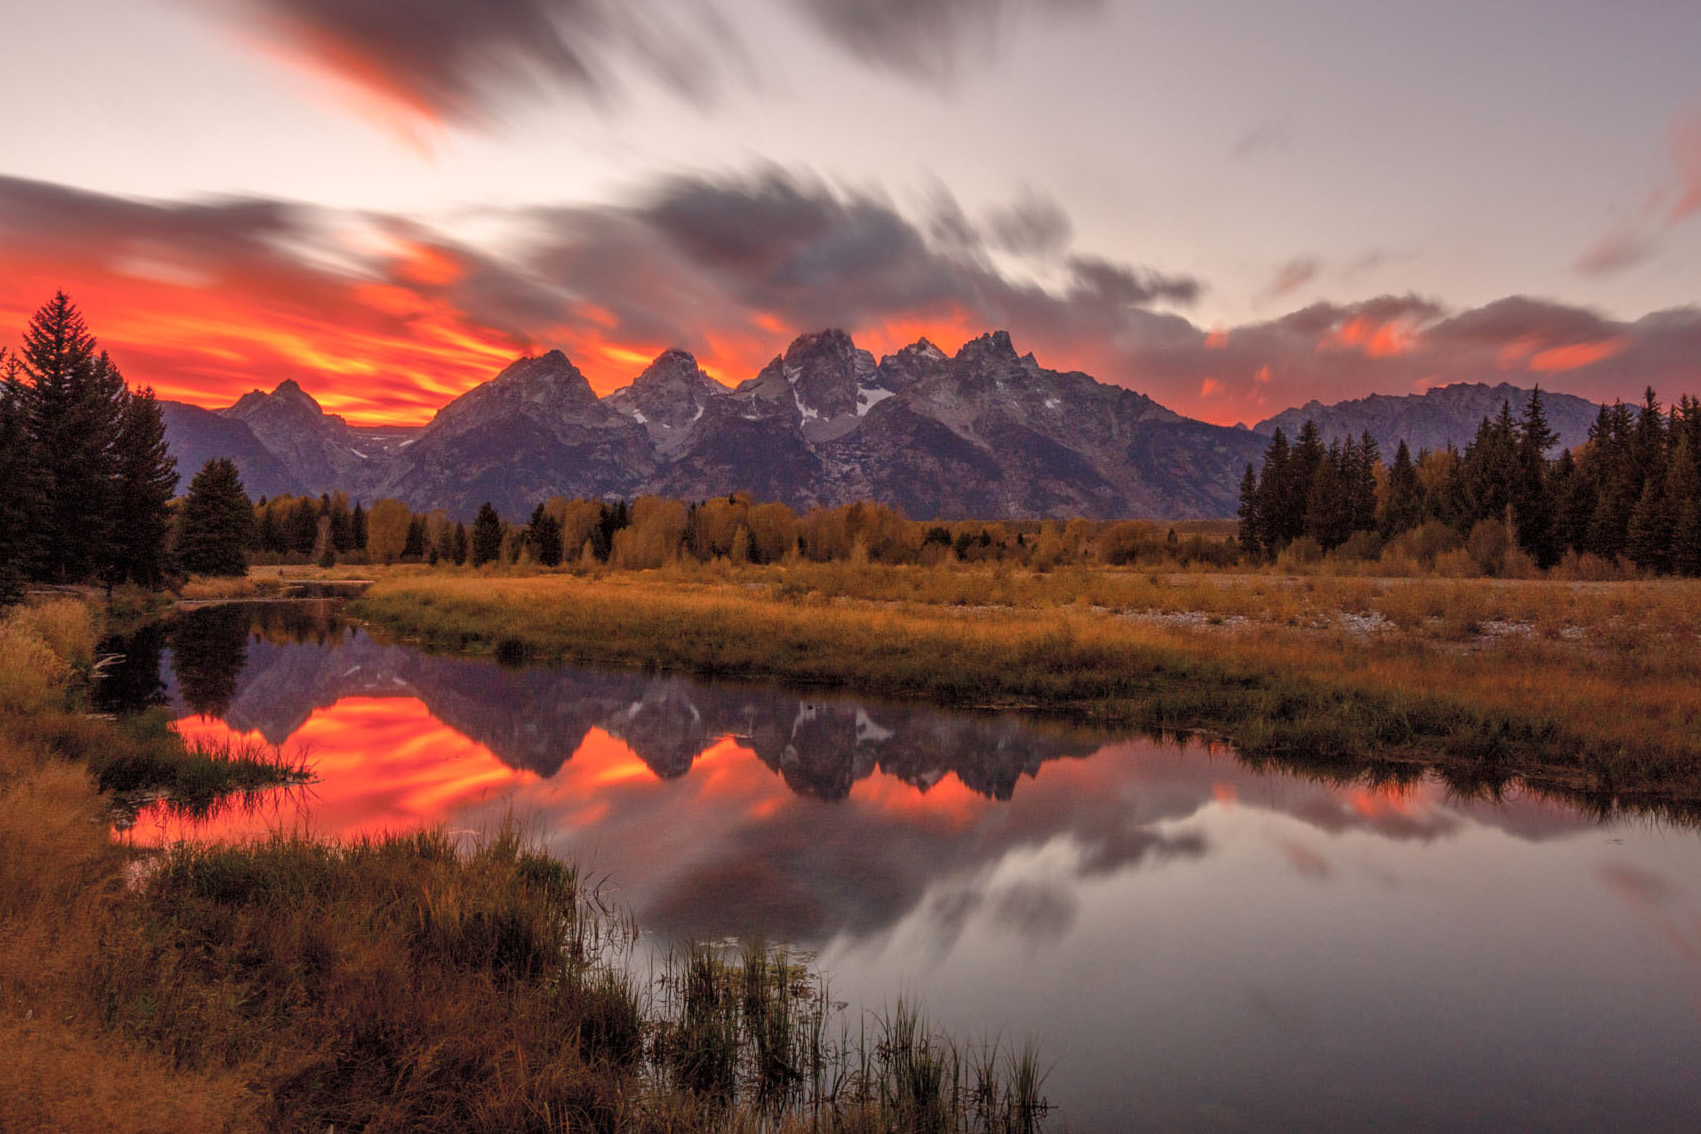 60 seconds in Grand Teton National Park - using a 10 stop filter.